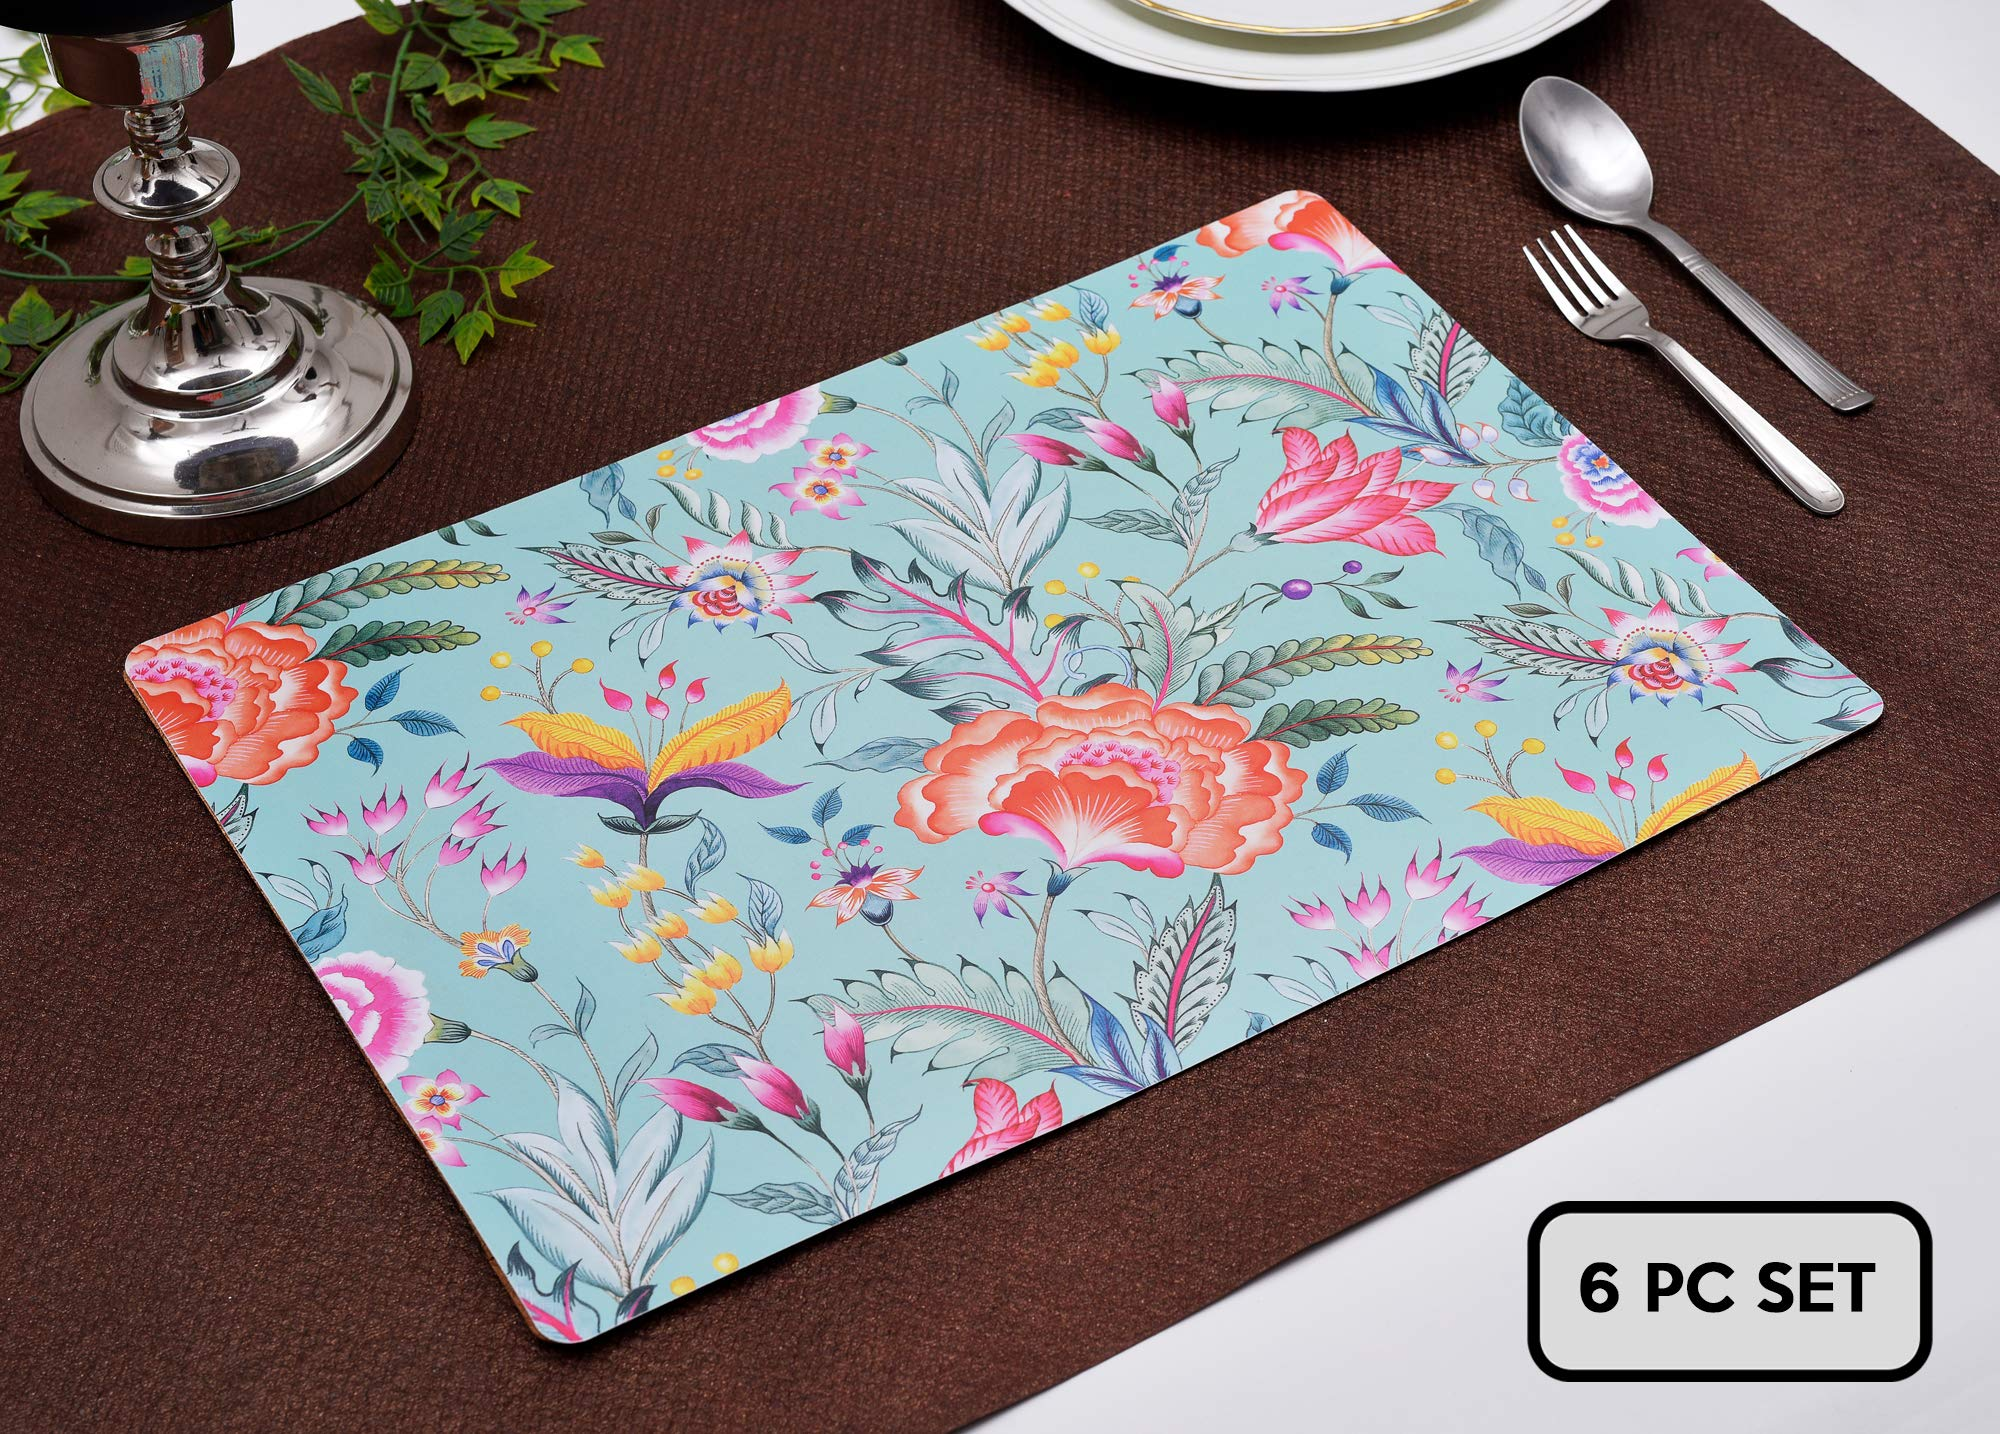 """Decozen Placemats for Dining Table - Coffee Table Floral Design Heat Resistant Scratch Proof Easy to Care Table Mats for Kitchen Décor 12""""X17"""" Inches Set of 6 Pieces"""